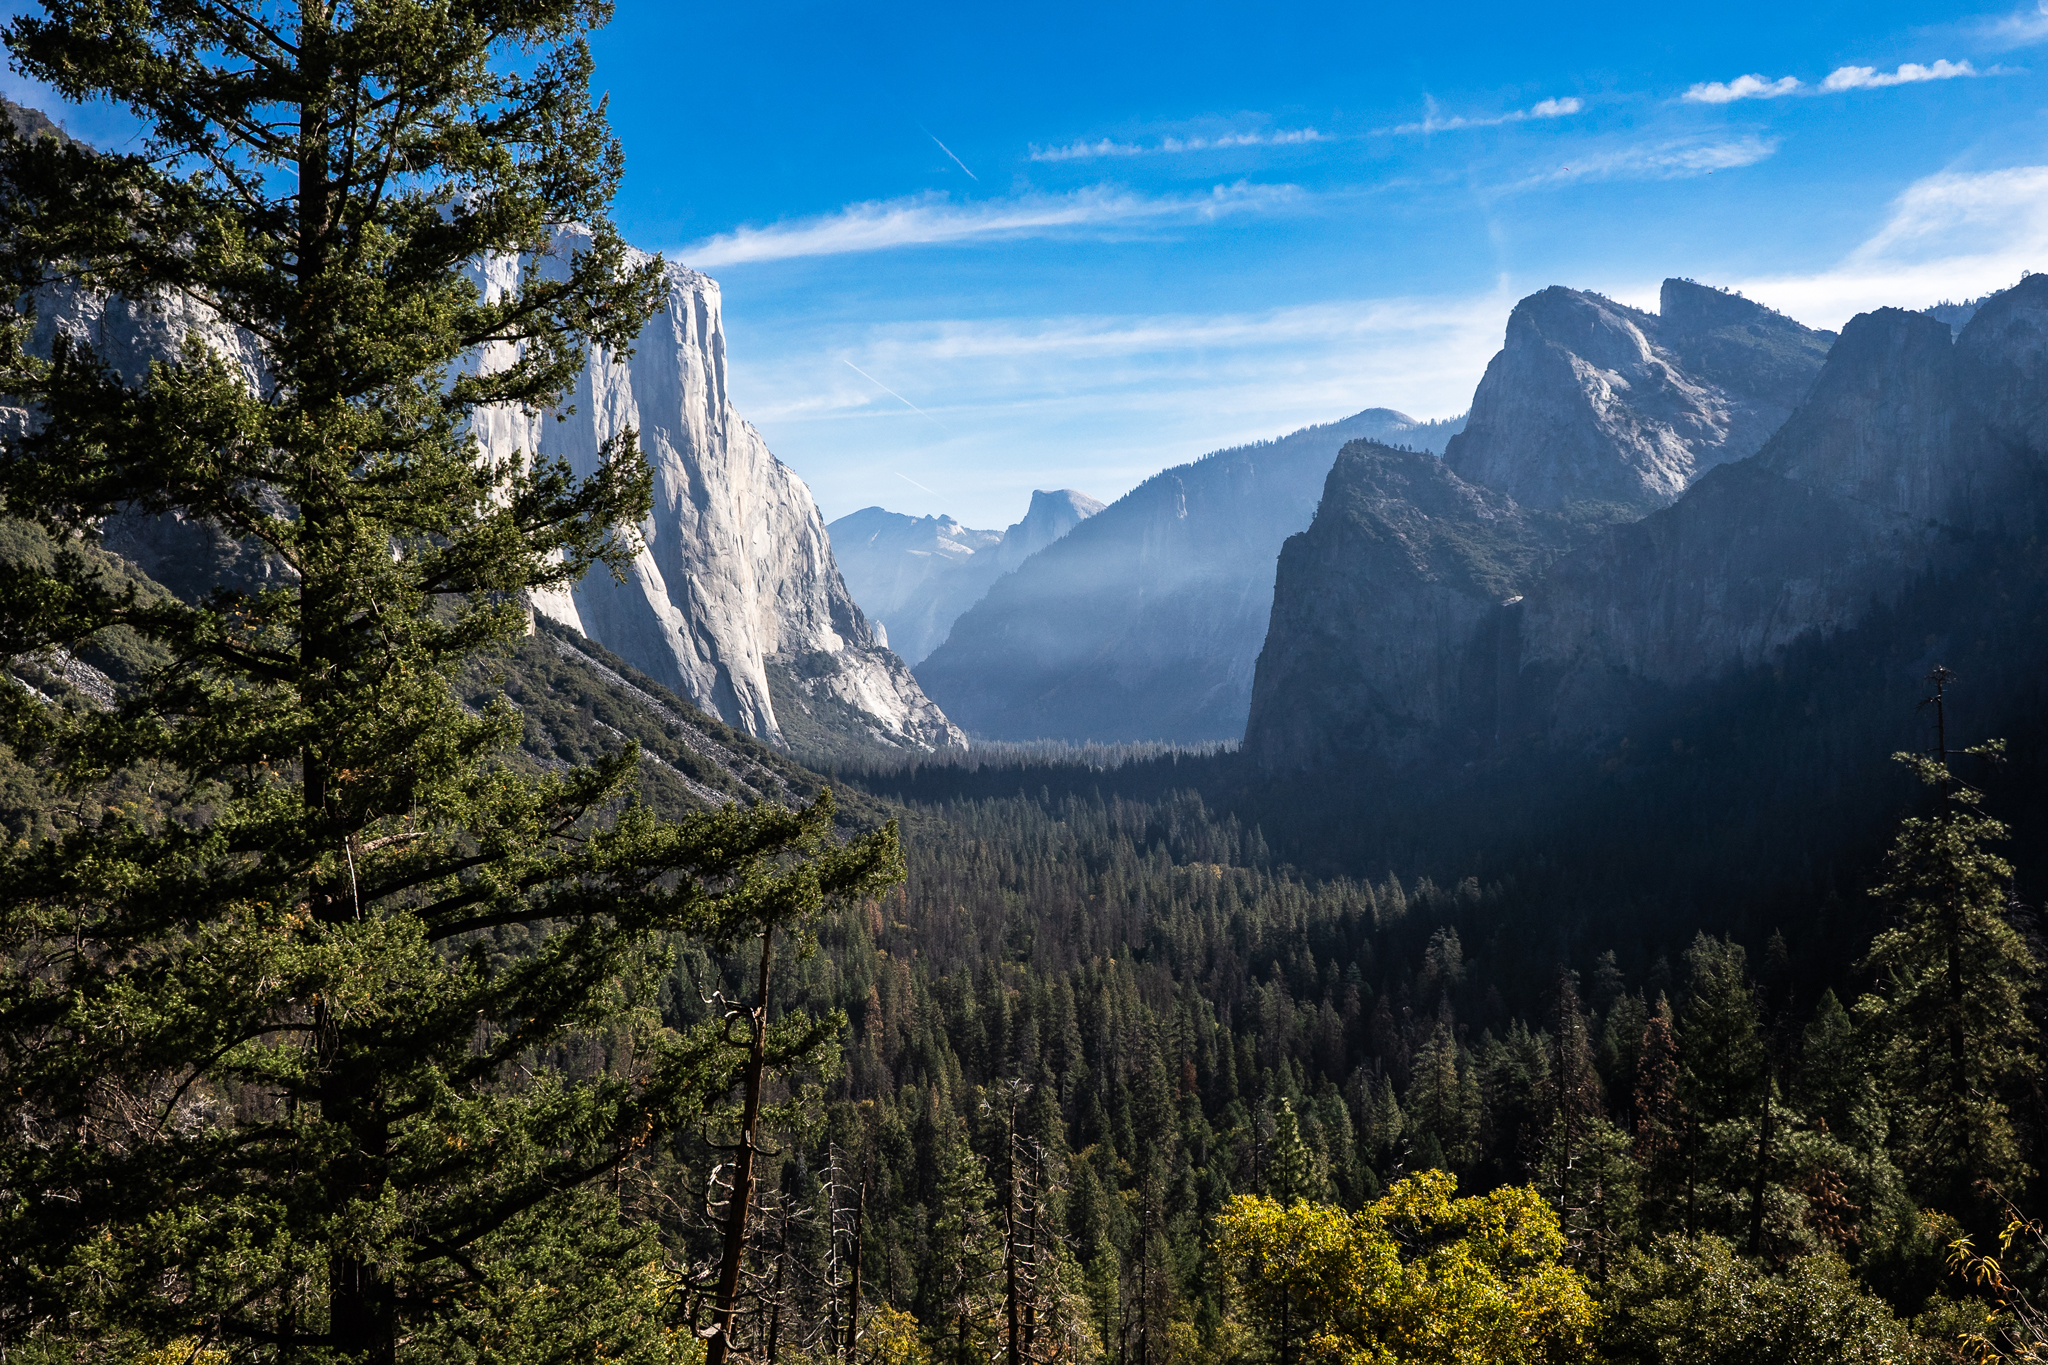 """Speaking of getting different angles … this wasn't one. It's from Yosemite's famous """"tunnel view"""" lookout, and Google will find you no shortage of images that look somewhat like this. But still, it's a gobsmackingly beautiful view, and if this picture captures it, I'm calling that a win."""